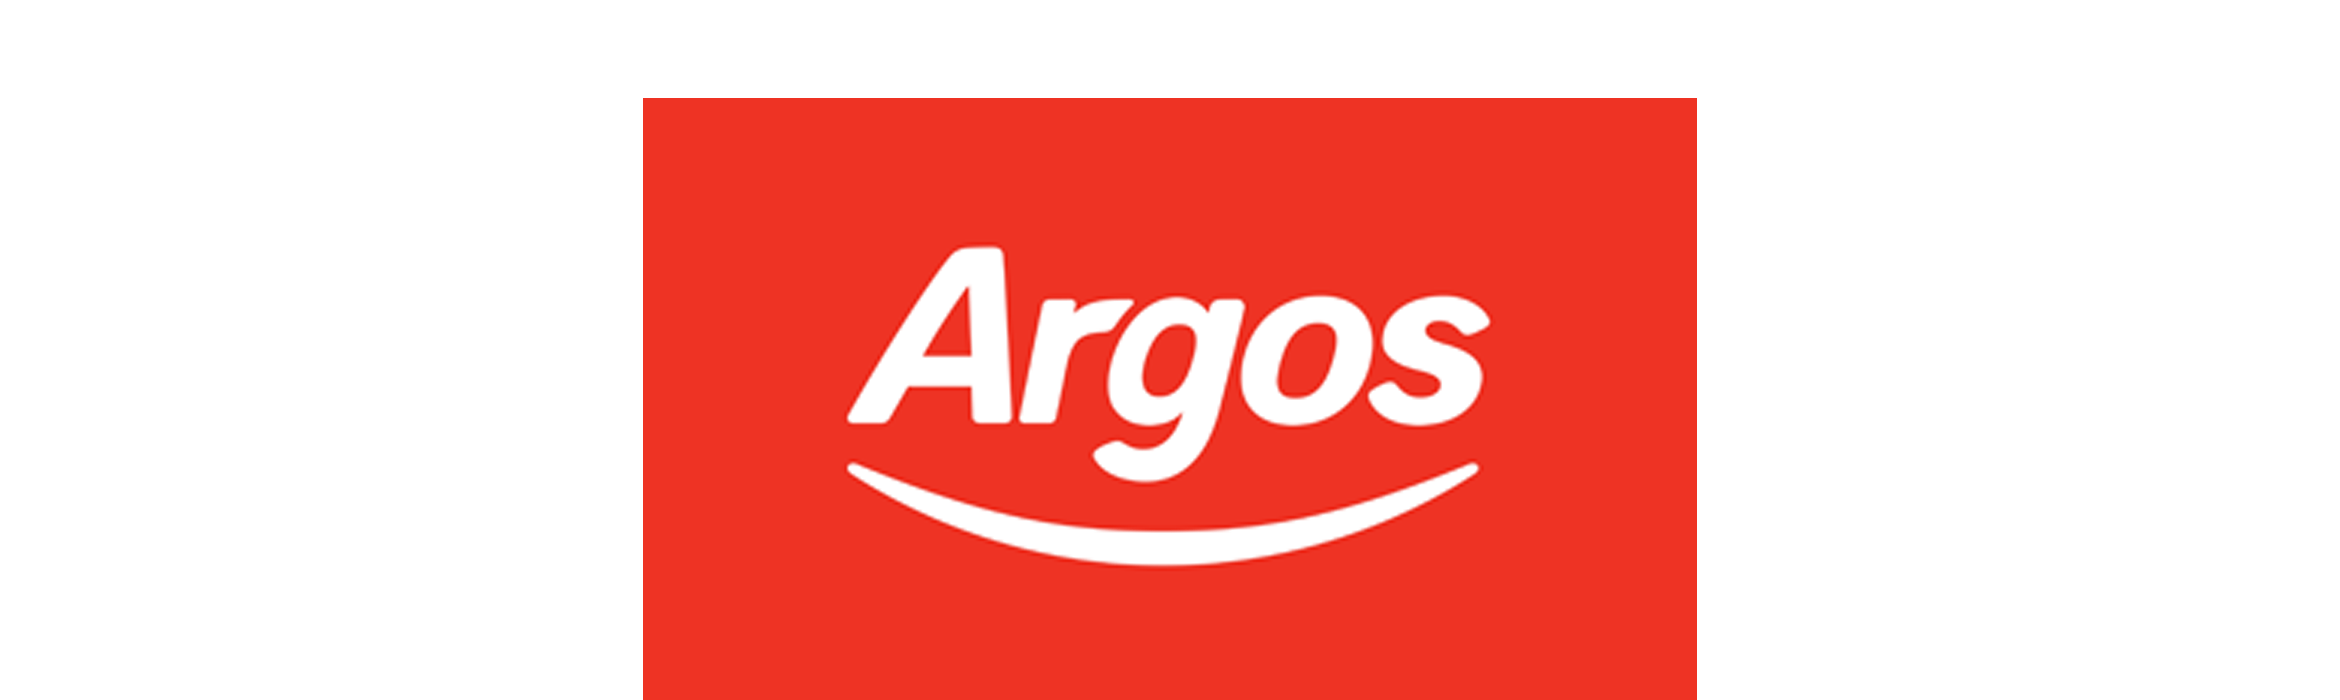 argos-all-in-box